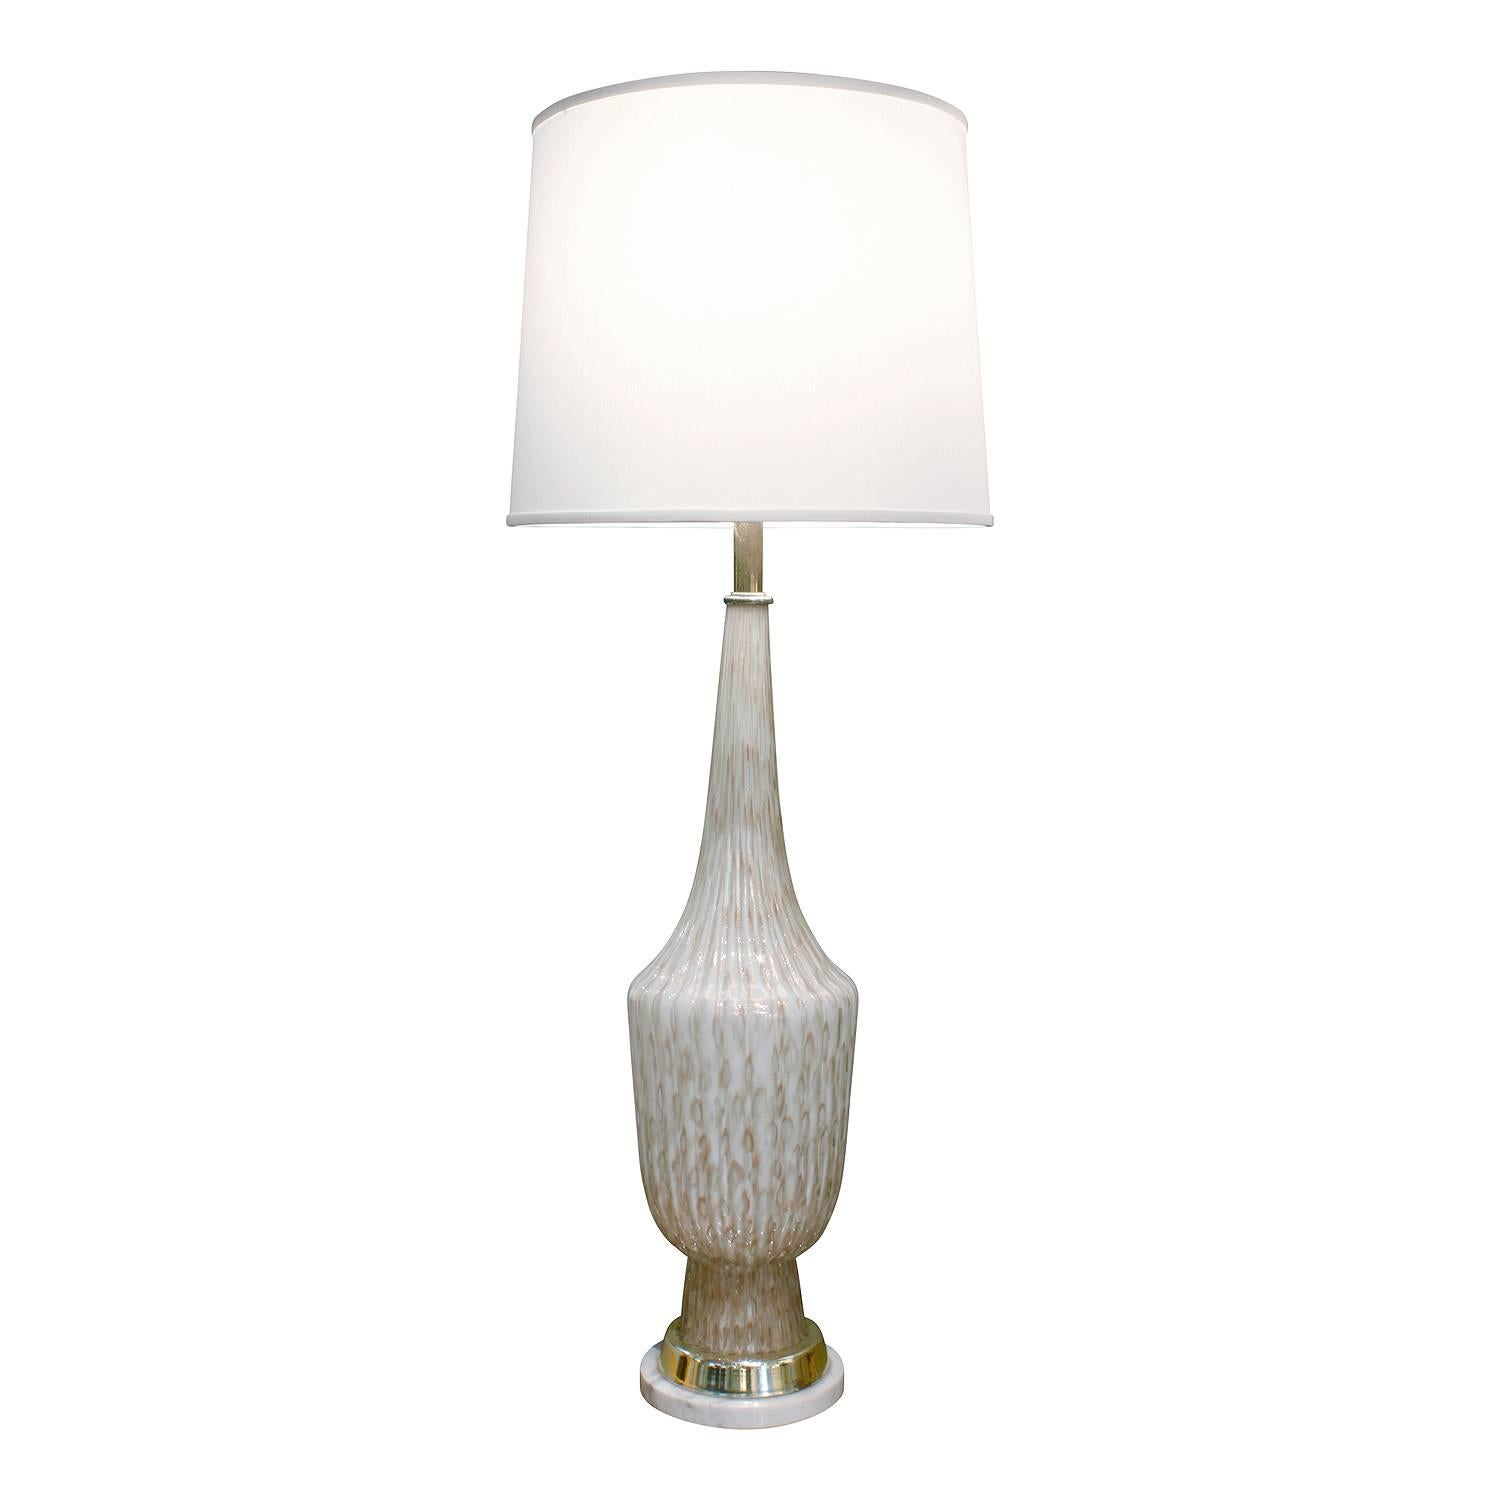 Fratelli Toso Attributed Monumental Glass Table Lamp, 1950s